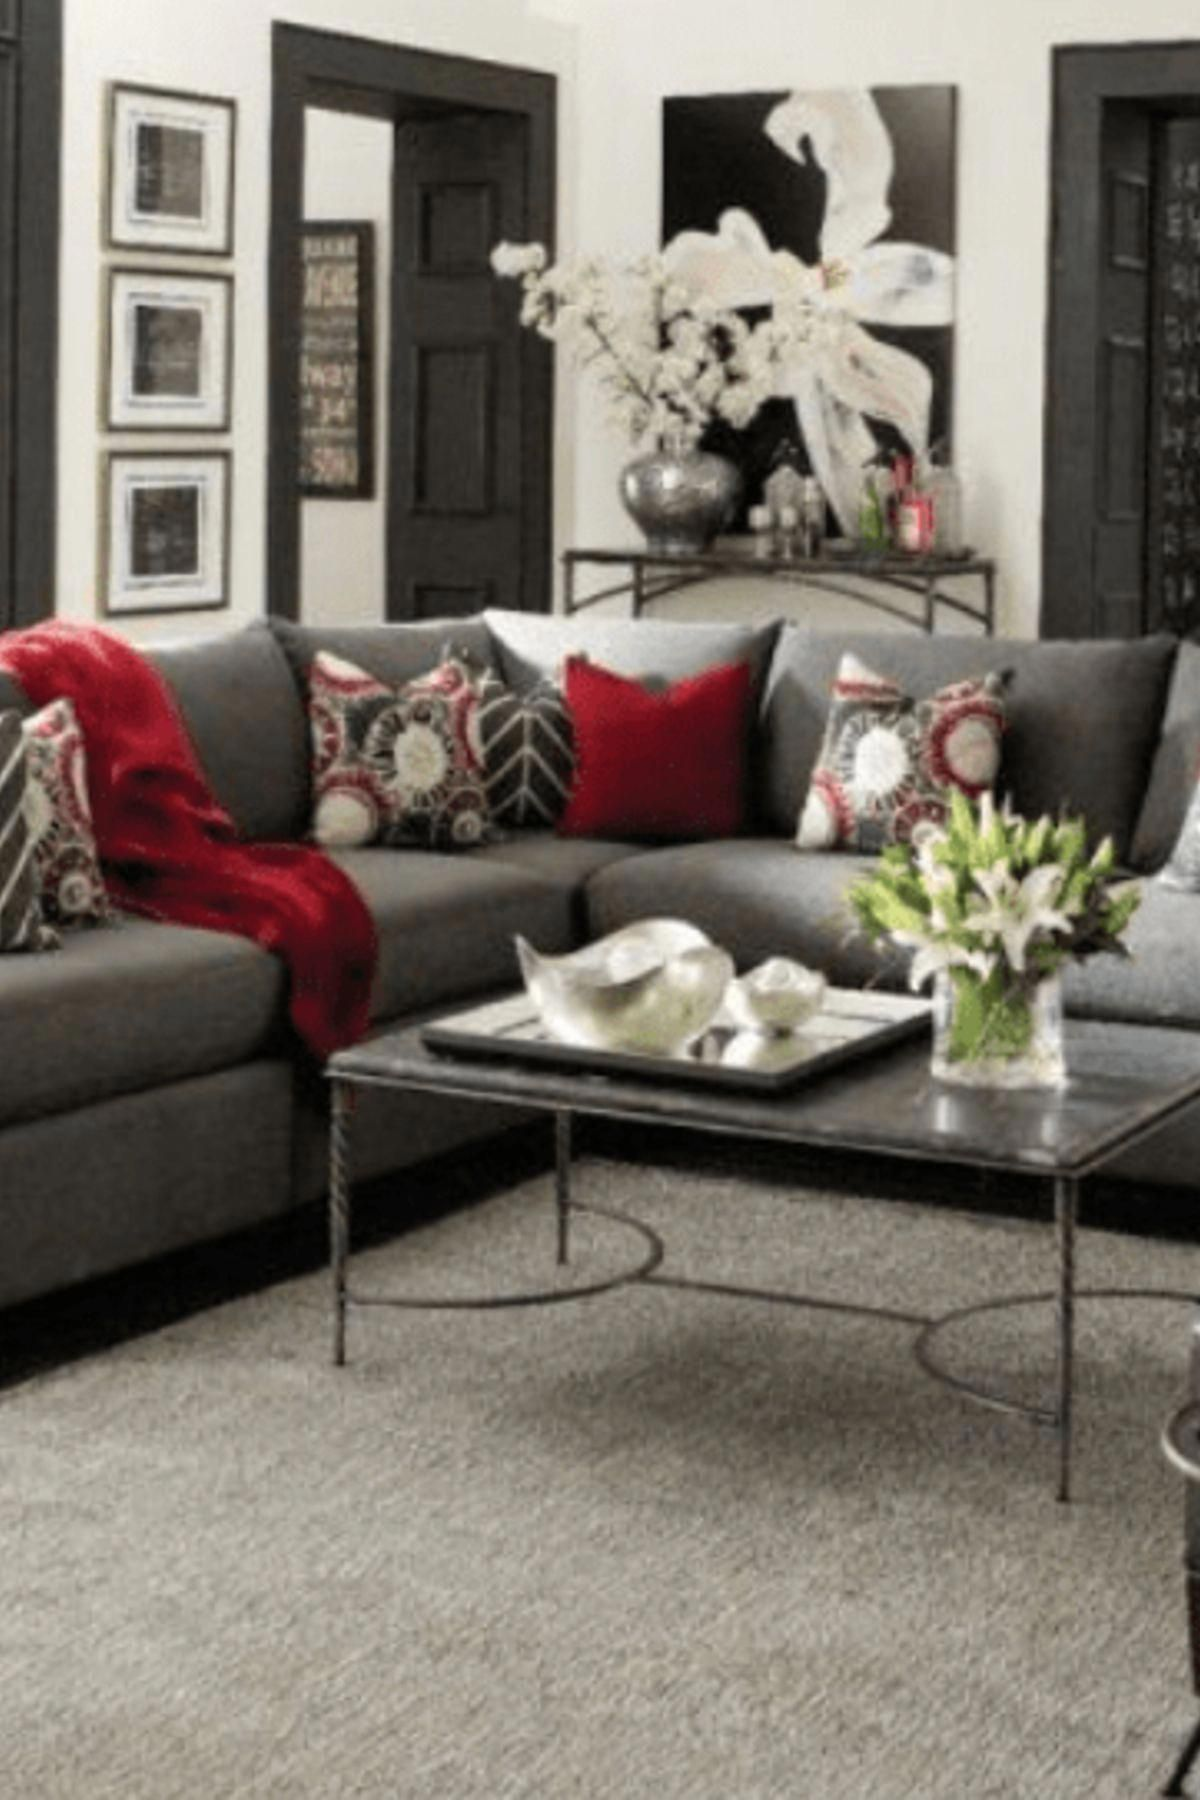 Home Decor Gray Living Room With Red Accent Pillows Light Gray Walls With Dark Grey Trim Living Room Decor Gray Grey And Red Living Room Living Room Colors